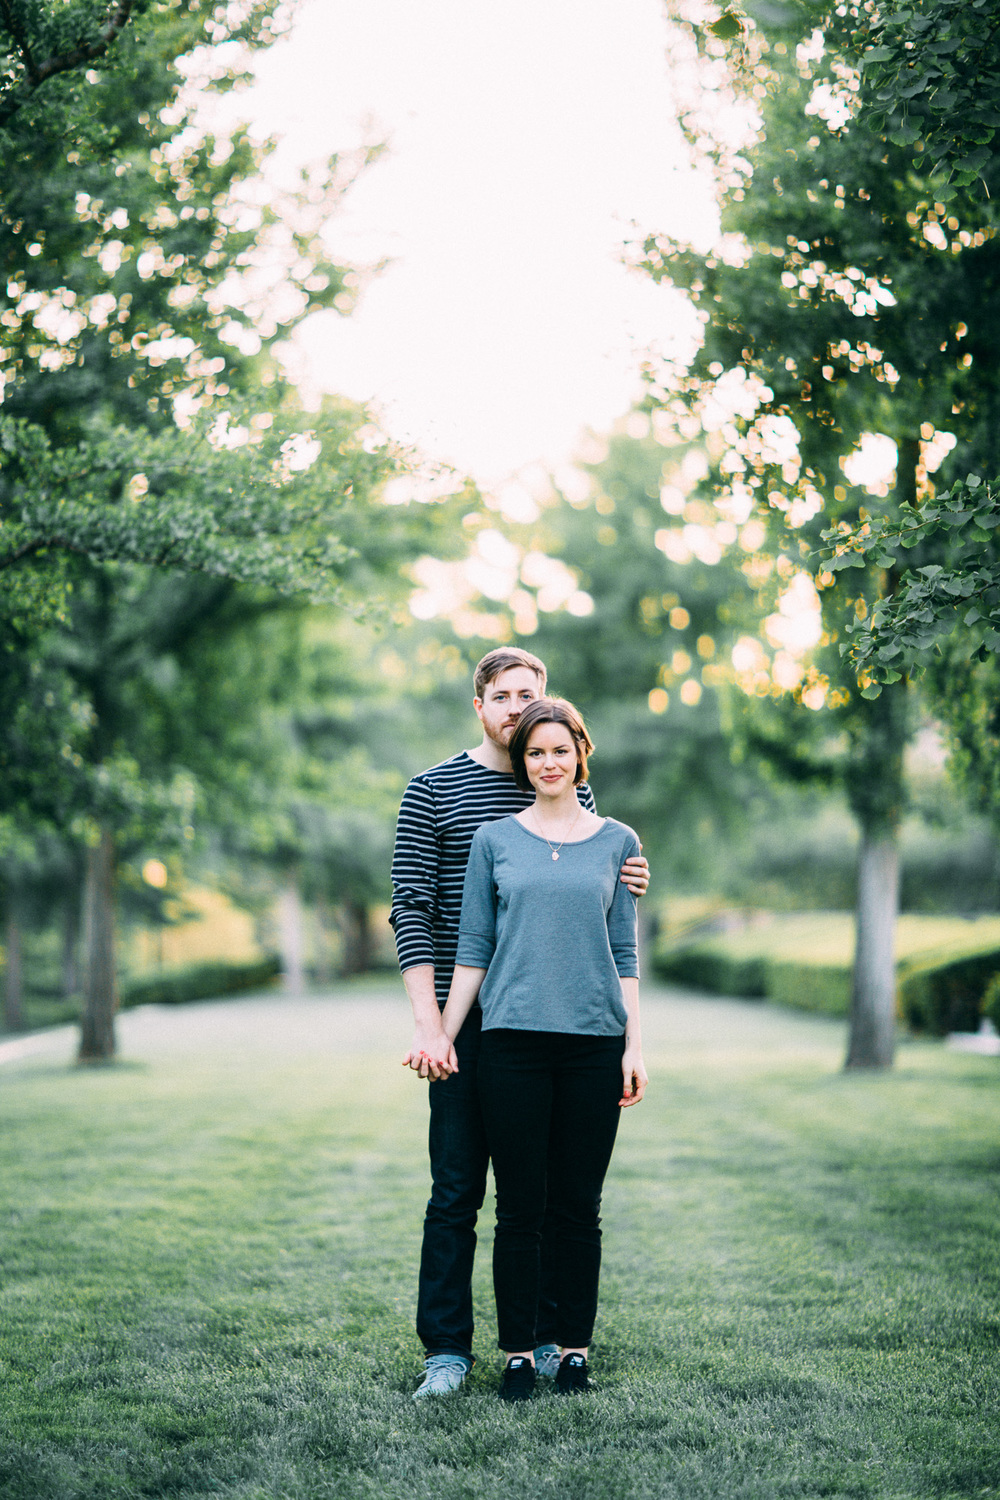 Brian Ide Kaley Tesdahl Engagement Portraits 10